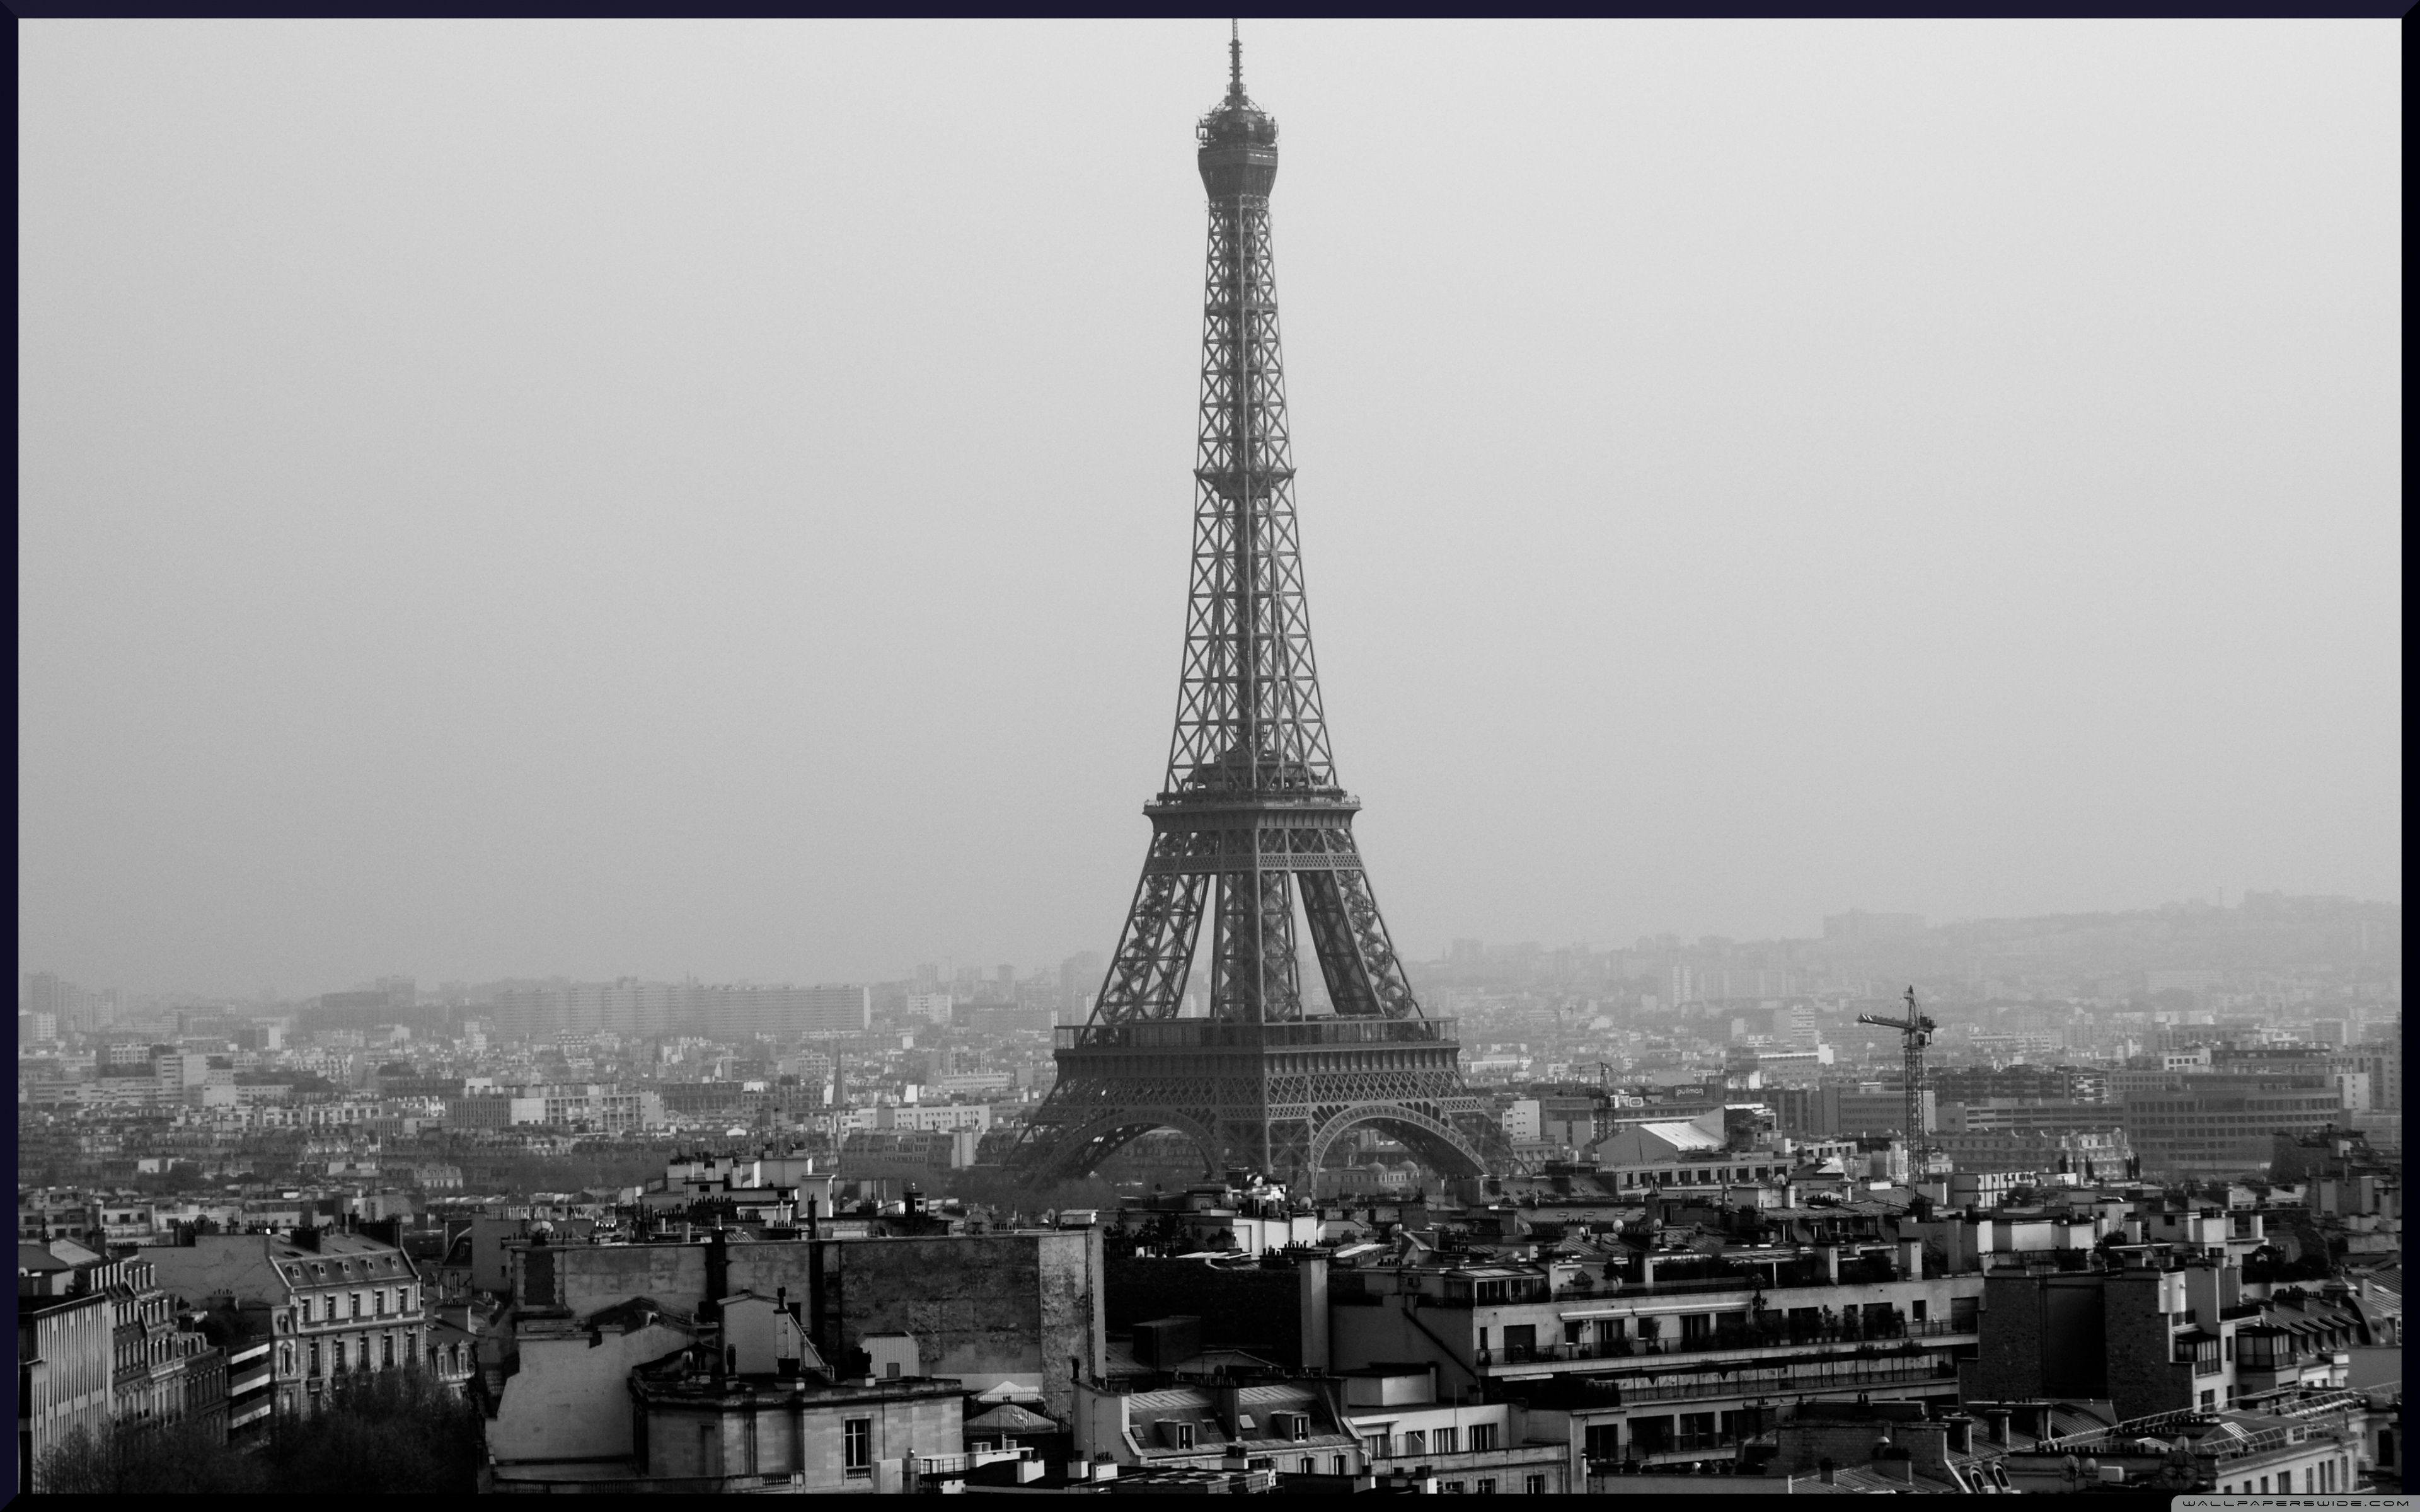 tower hd Black and White Backgrounds